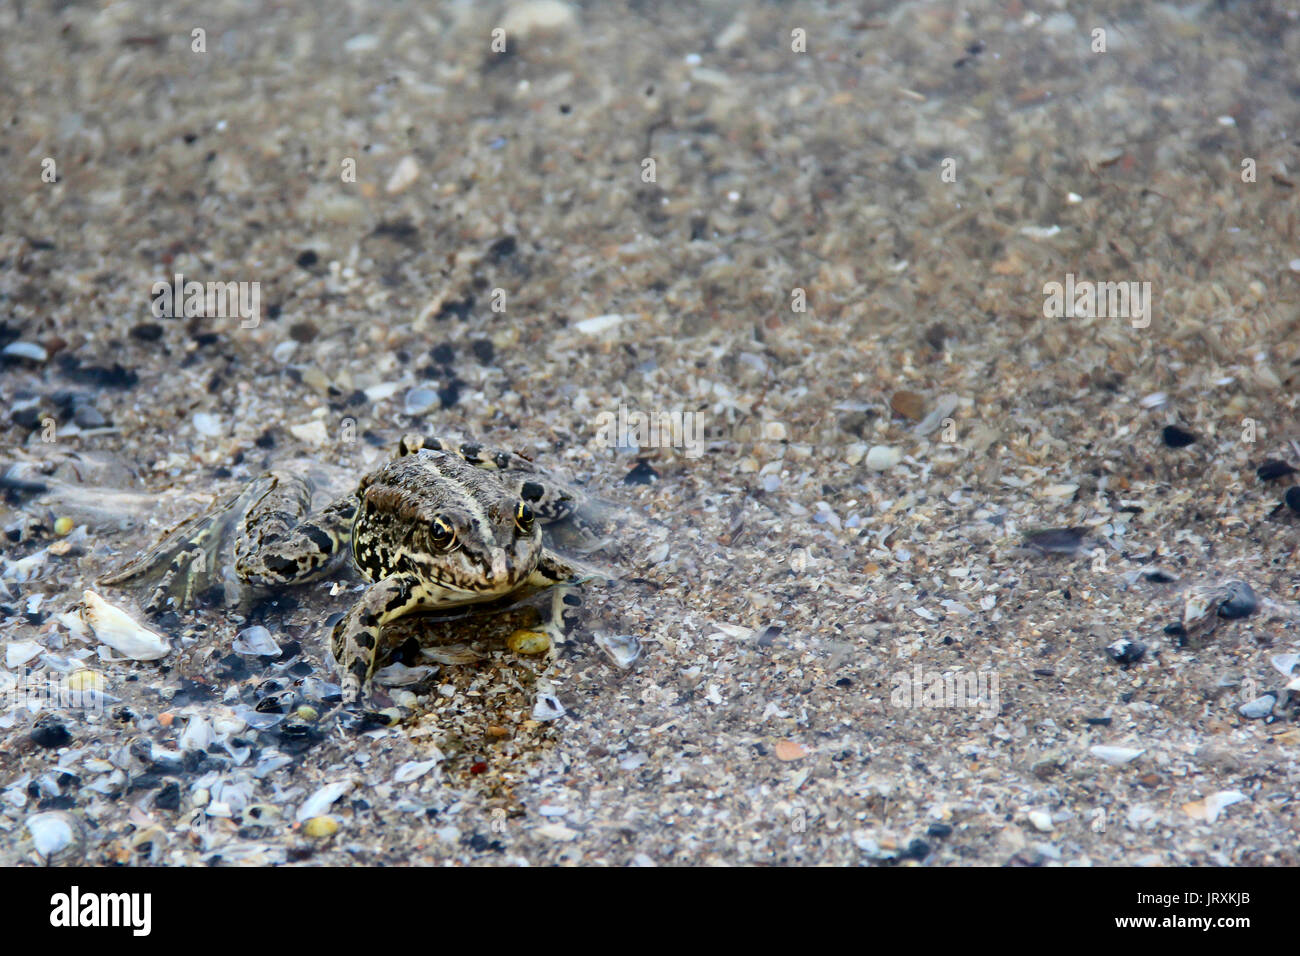 frog floating on the water. photo - Stock Image